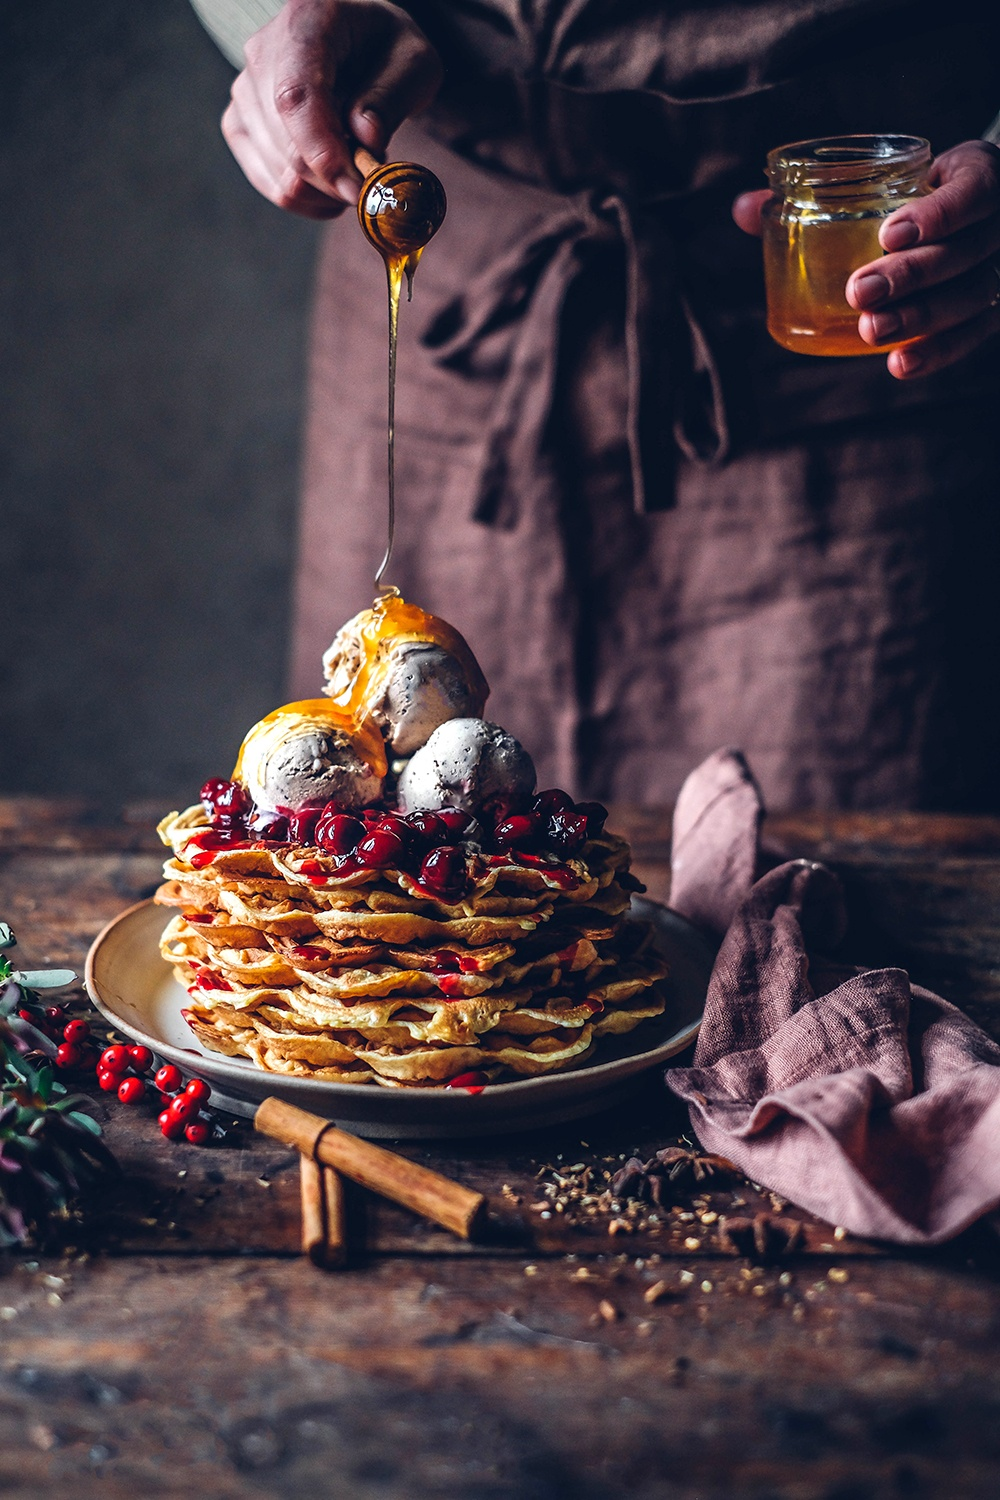 Gluten-free Waffles with Chai Ice-Cream and Cherry Compote